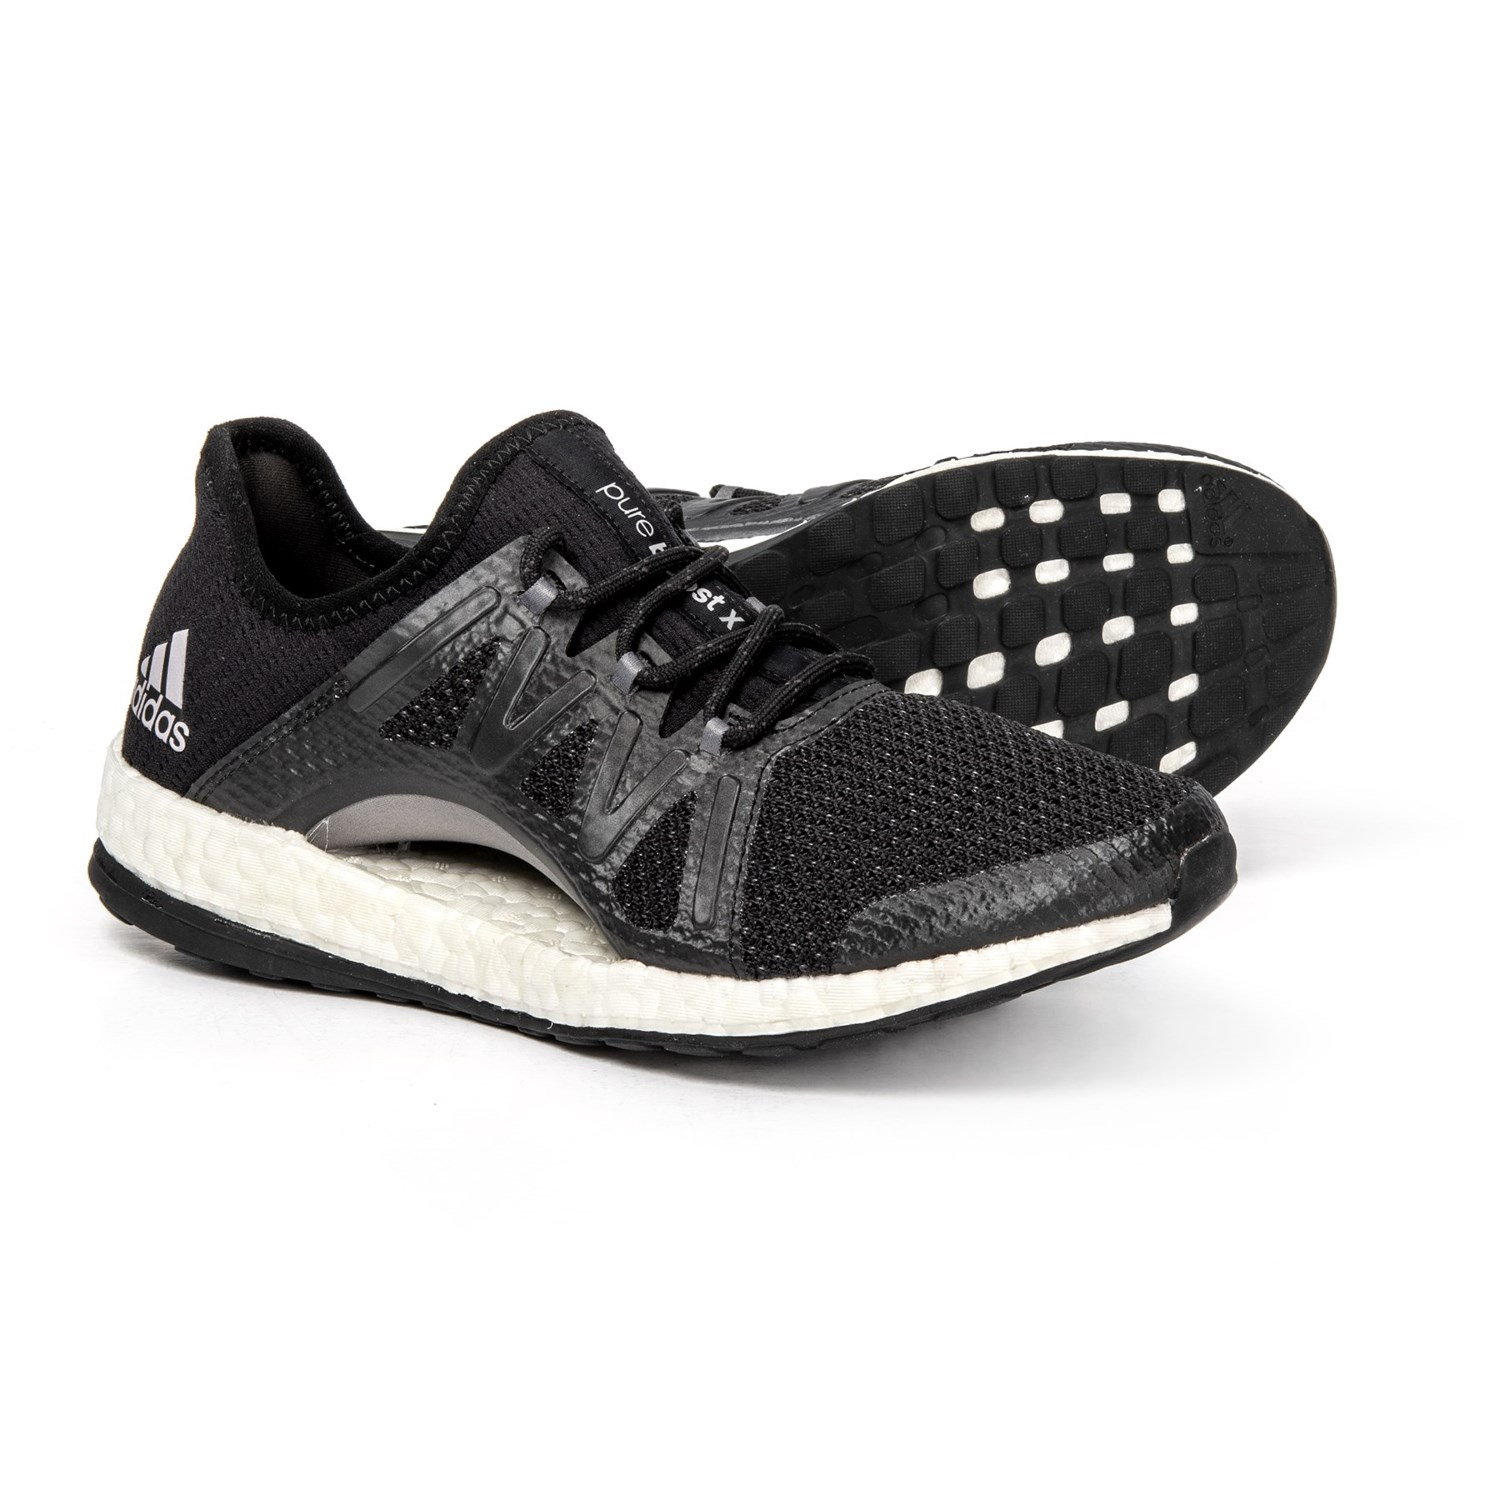 a940c23c4daa4 adidas PureBOOST Xpose Running Shoes (For Women) in Core Black Core Black